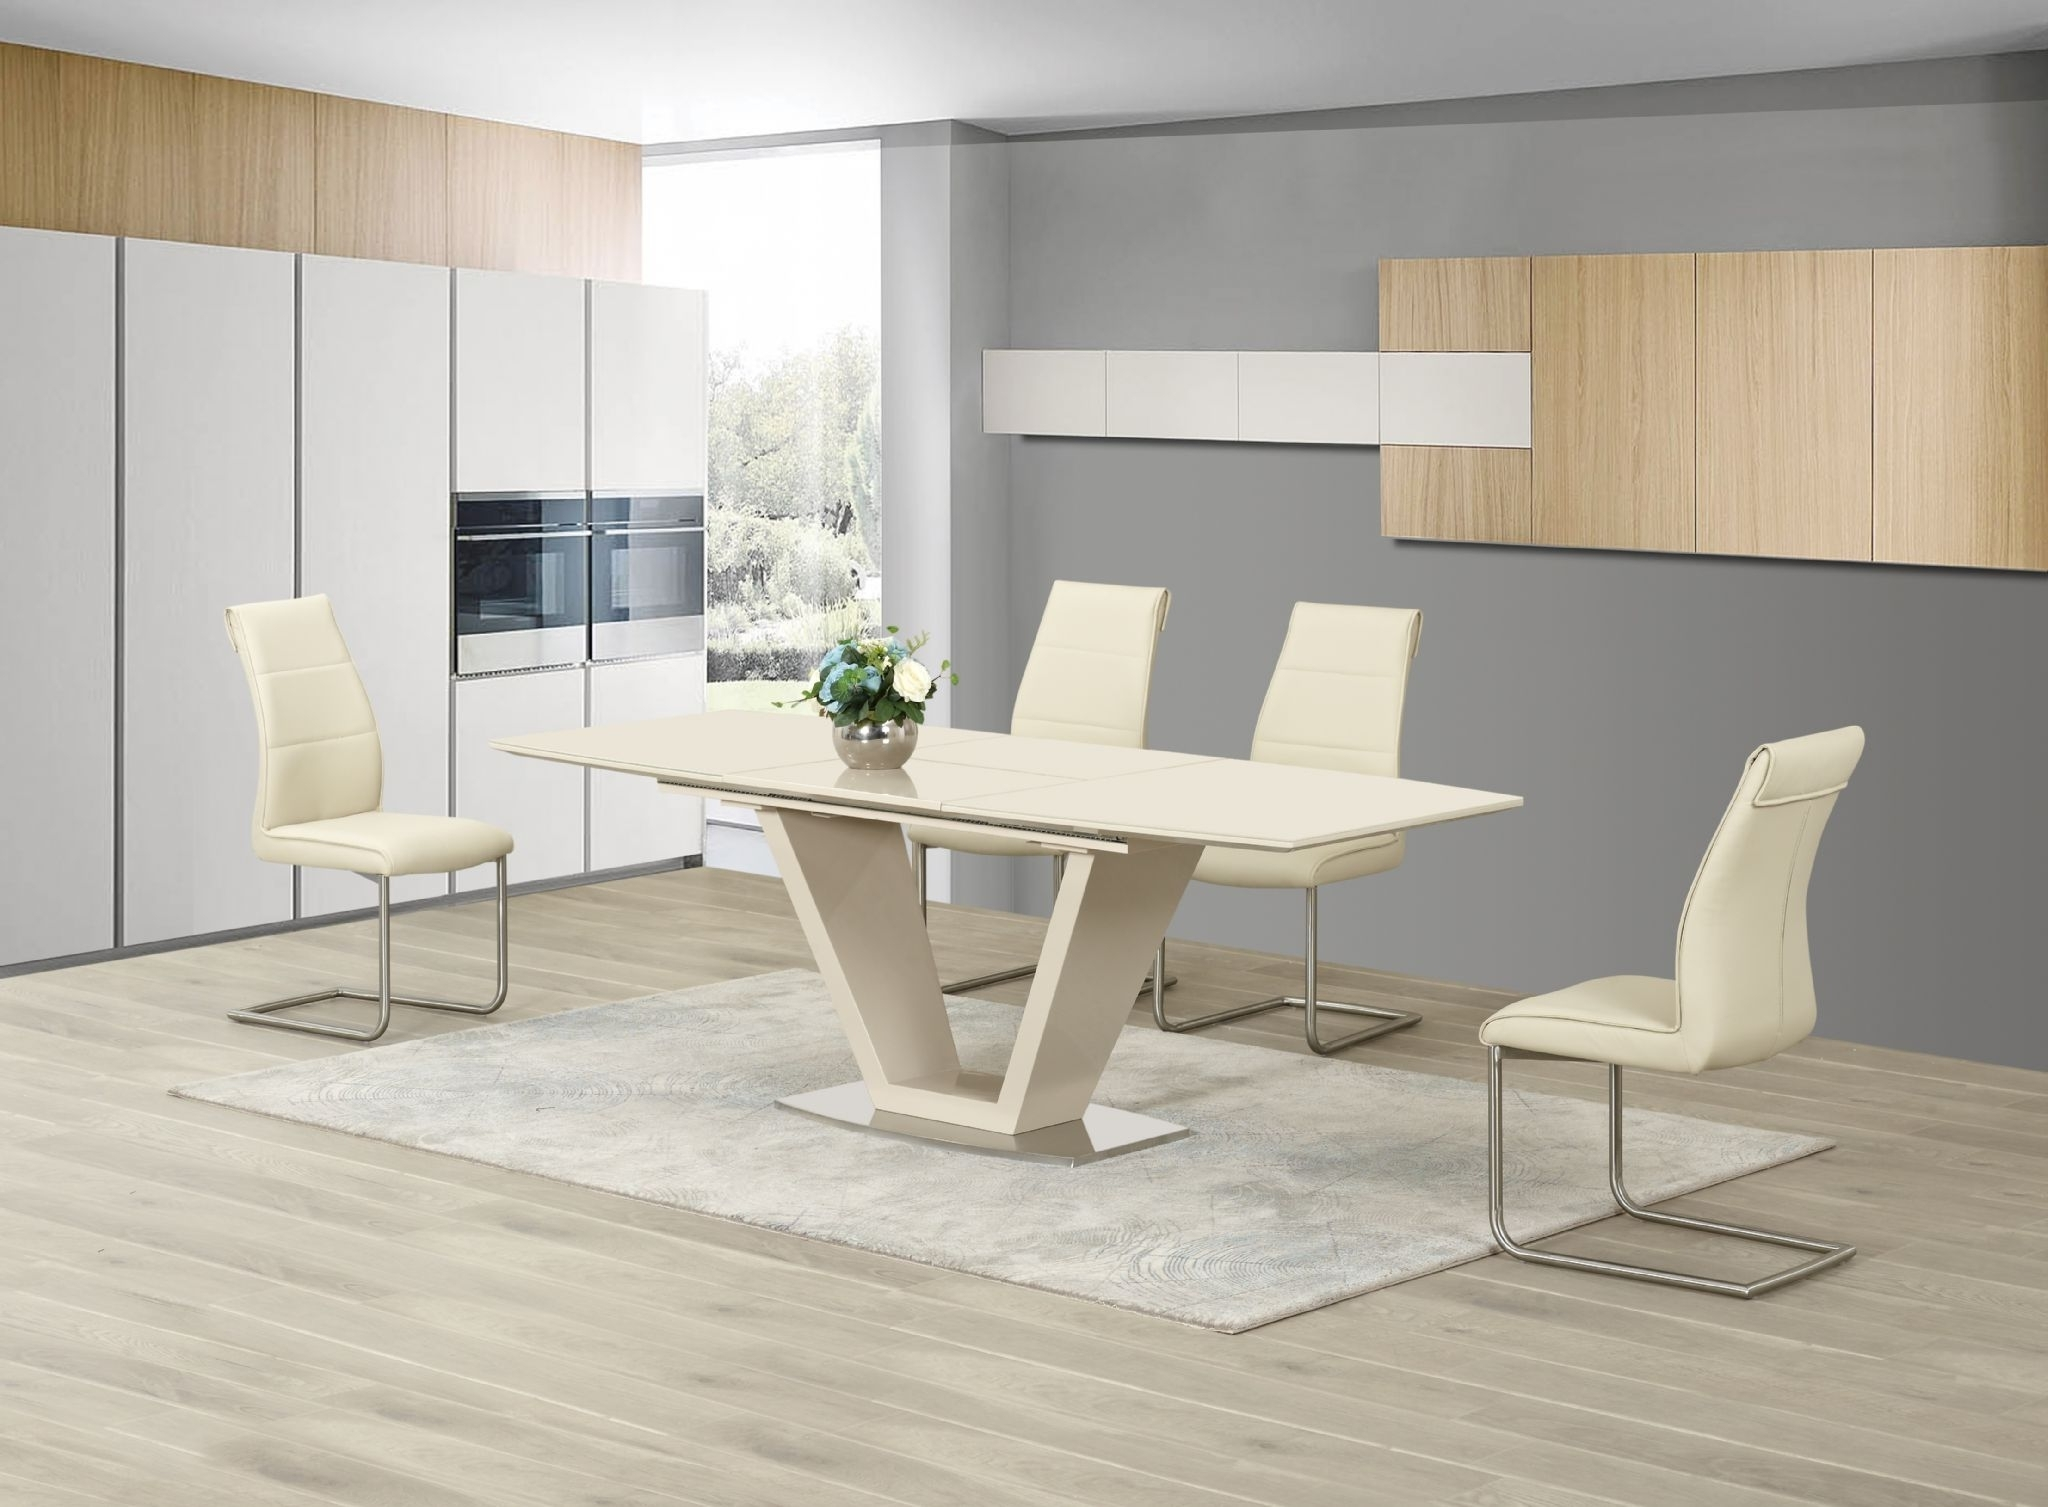 Ga Loriga Cream Gloss Glass Designer Dining Table Extending 160 220 In Widely Used Extendable Glass Dining Tables And 6 Chairs (View 10 of 25)